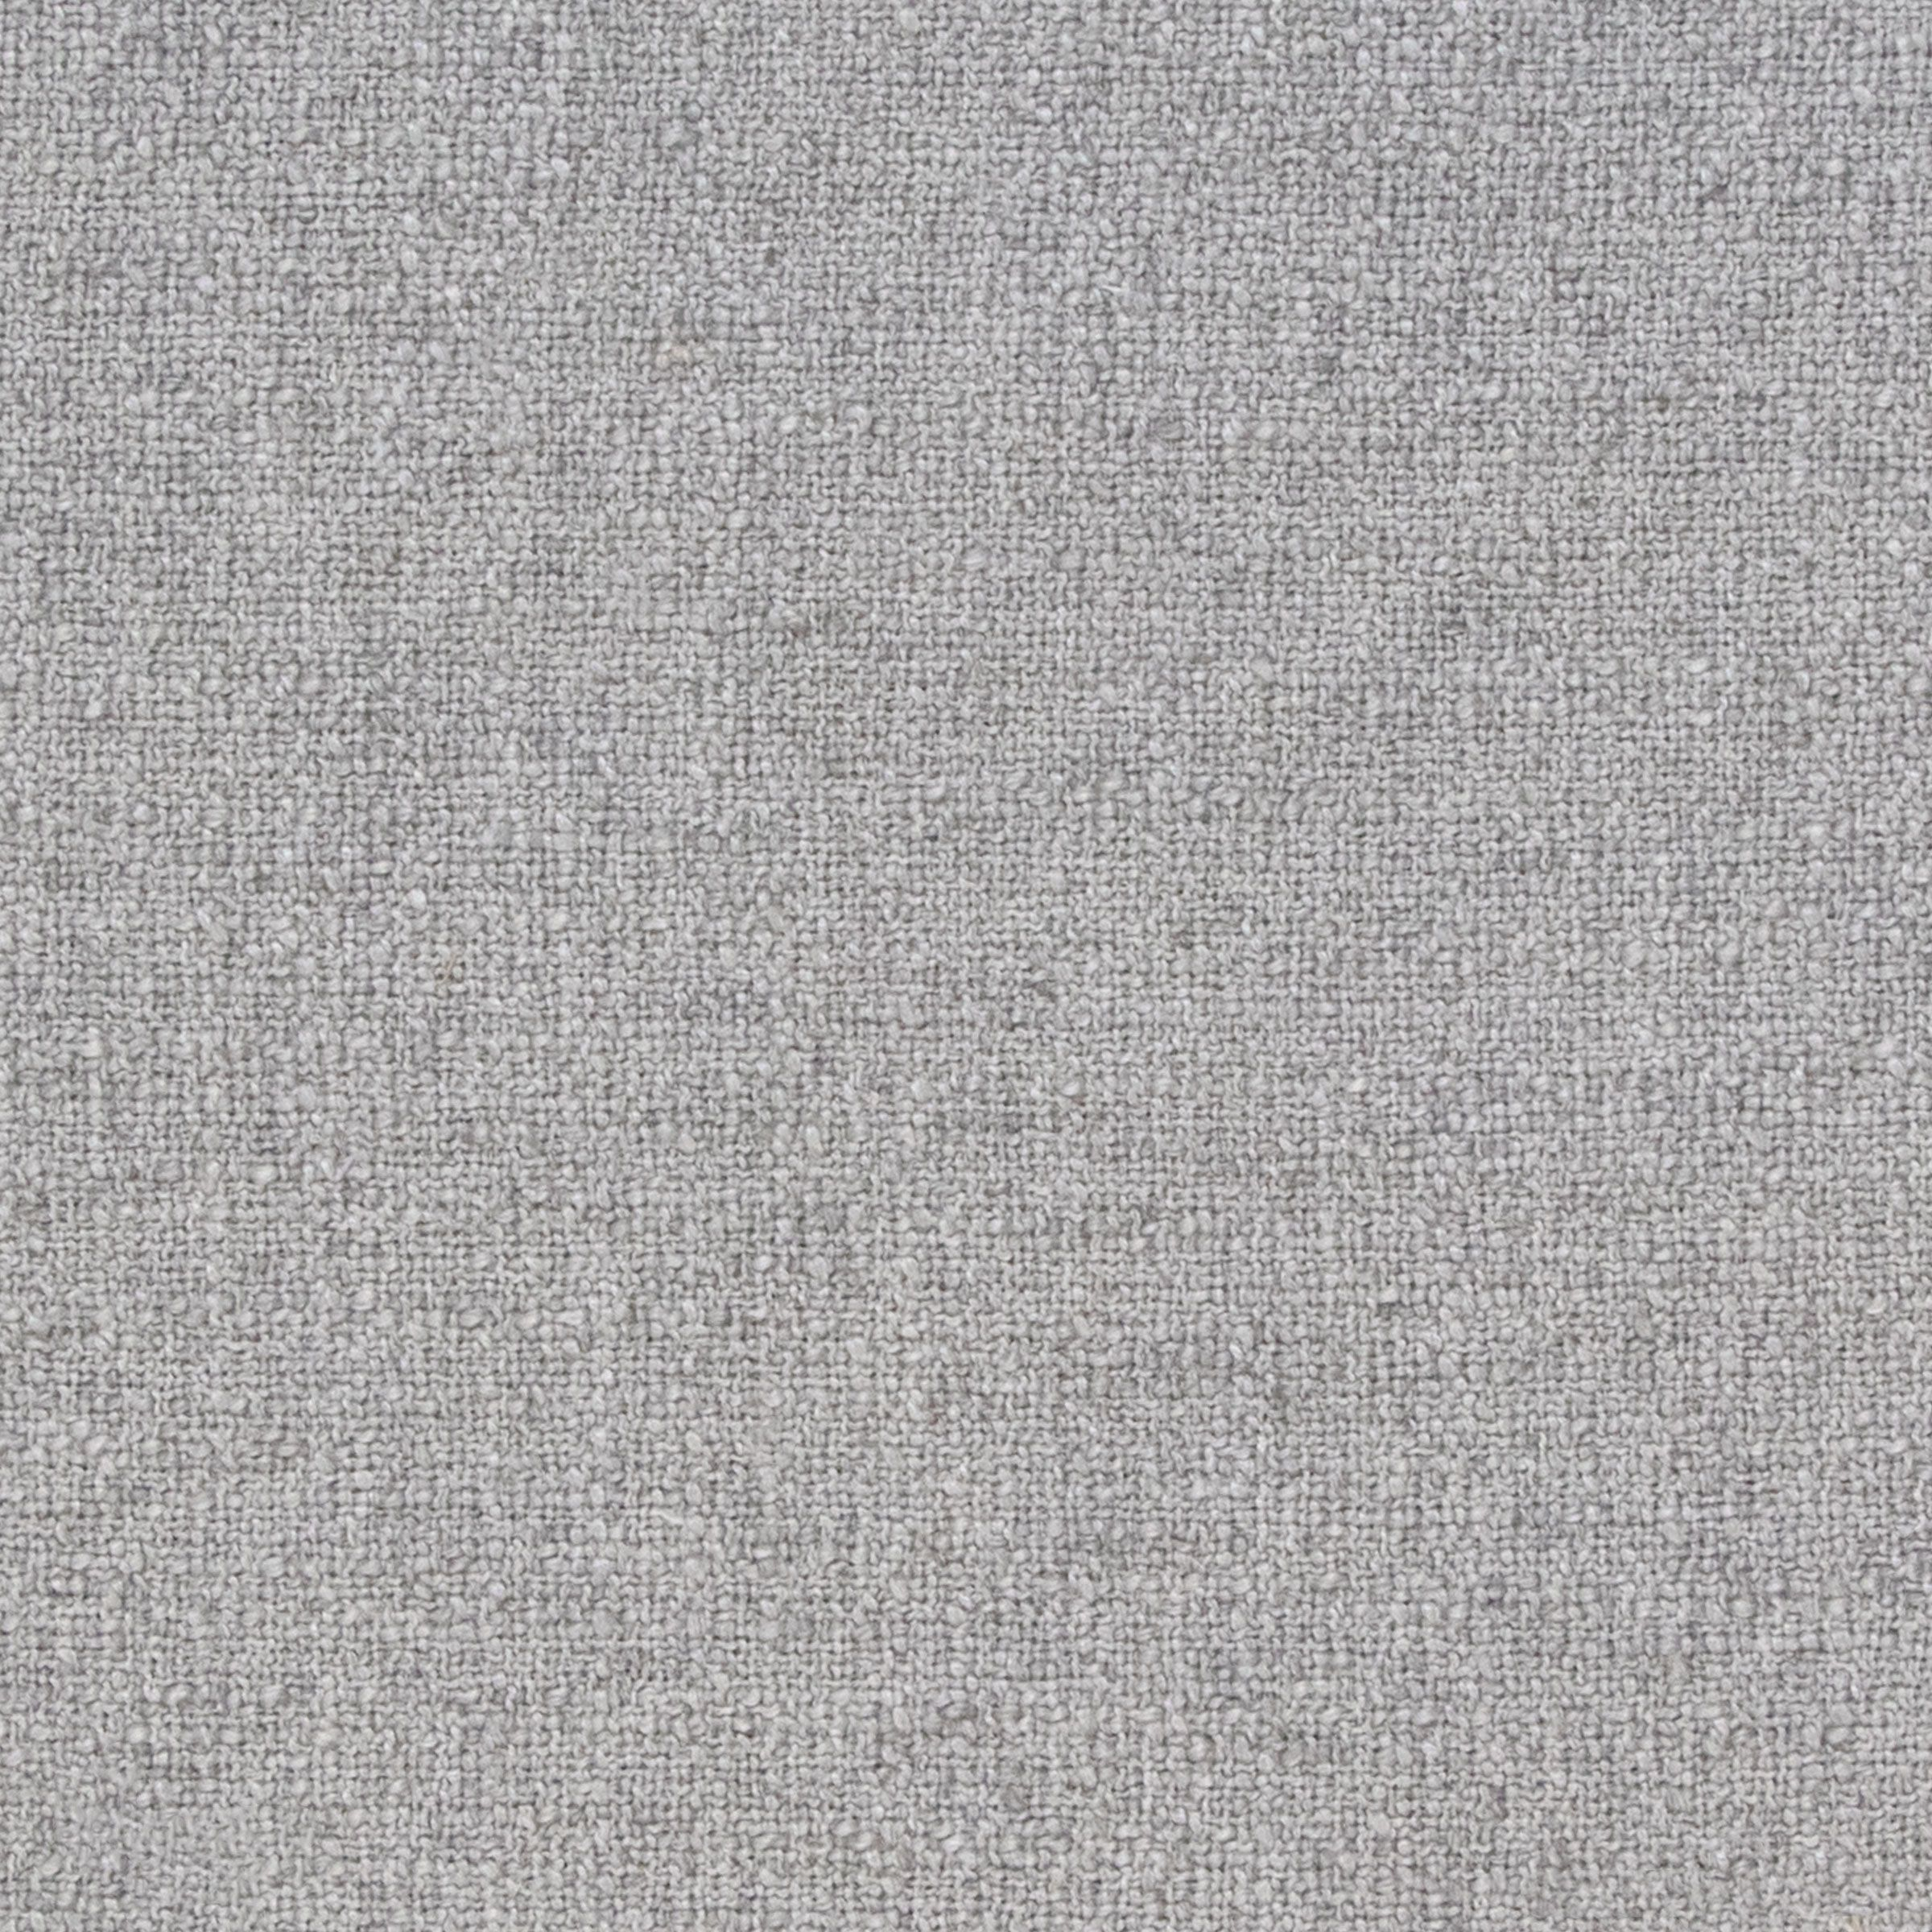 B9187 Light Grey Sofa Texture Sofa Fabric Texture Grey Fabric